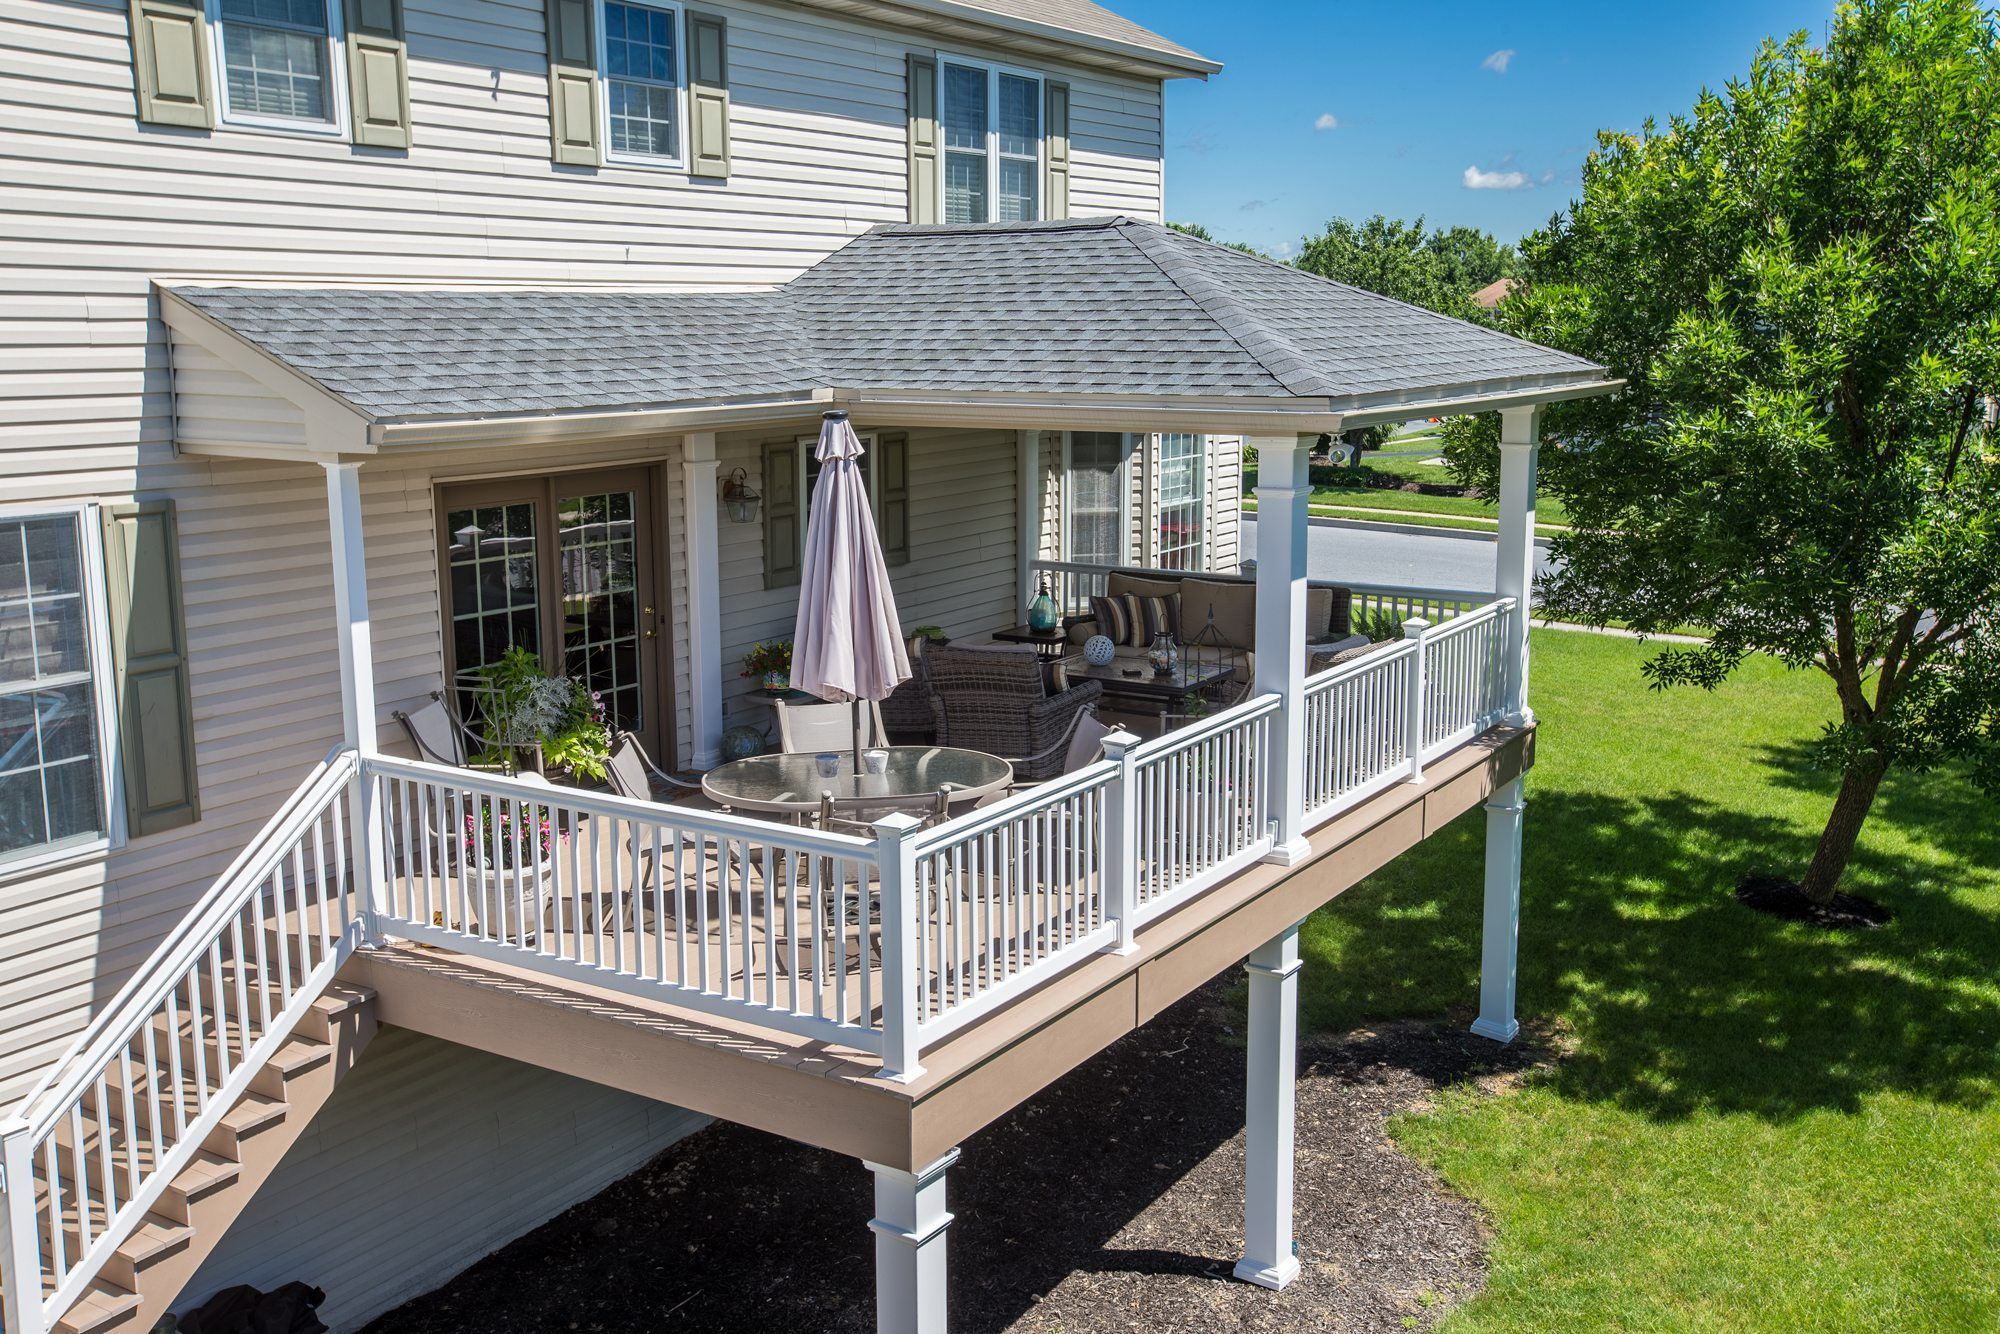 I Think The Perfect Deck Is One That Has Both A Covered And Uncovered Area Or Has A Retractable Awning Not C Building A Deck Covered Deck Designs Patio Plans